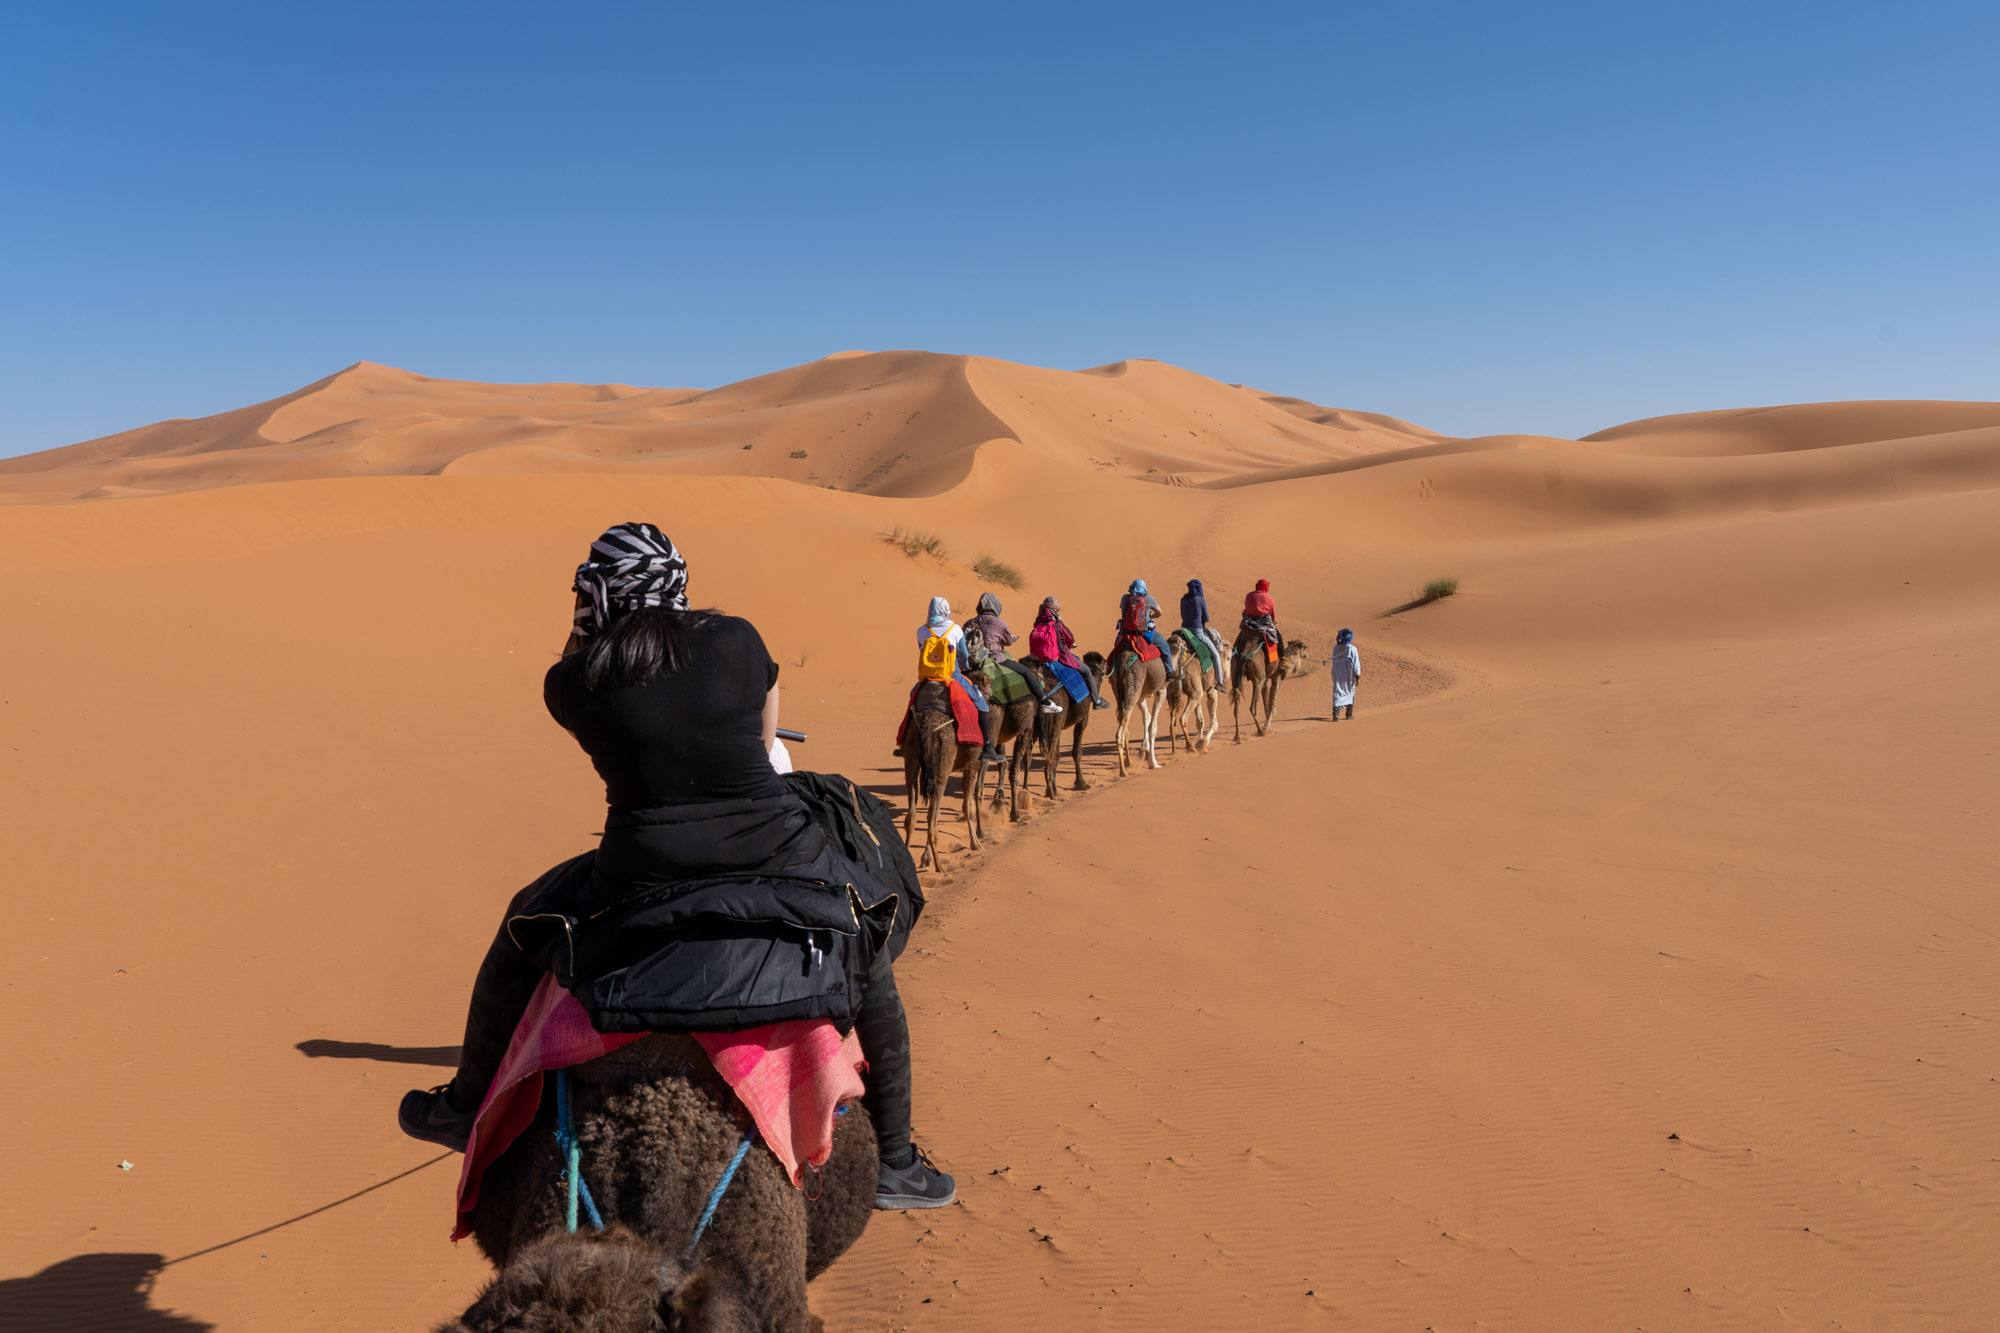 Riding camels into the Sahara Desert in Morocco